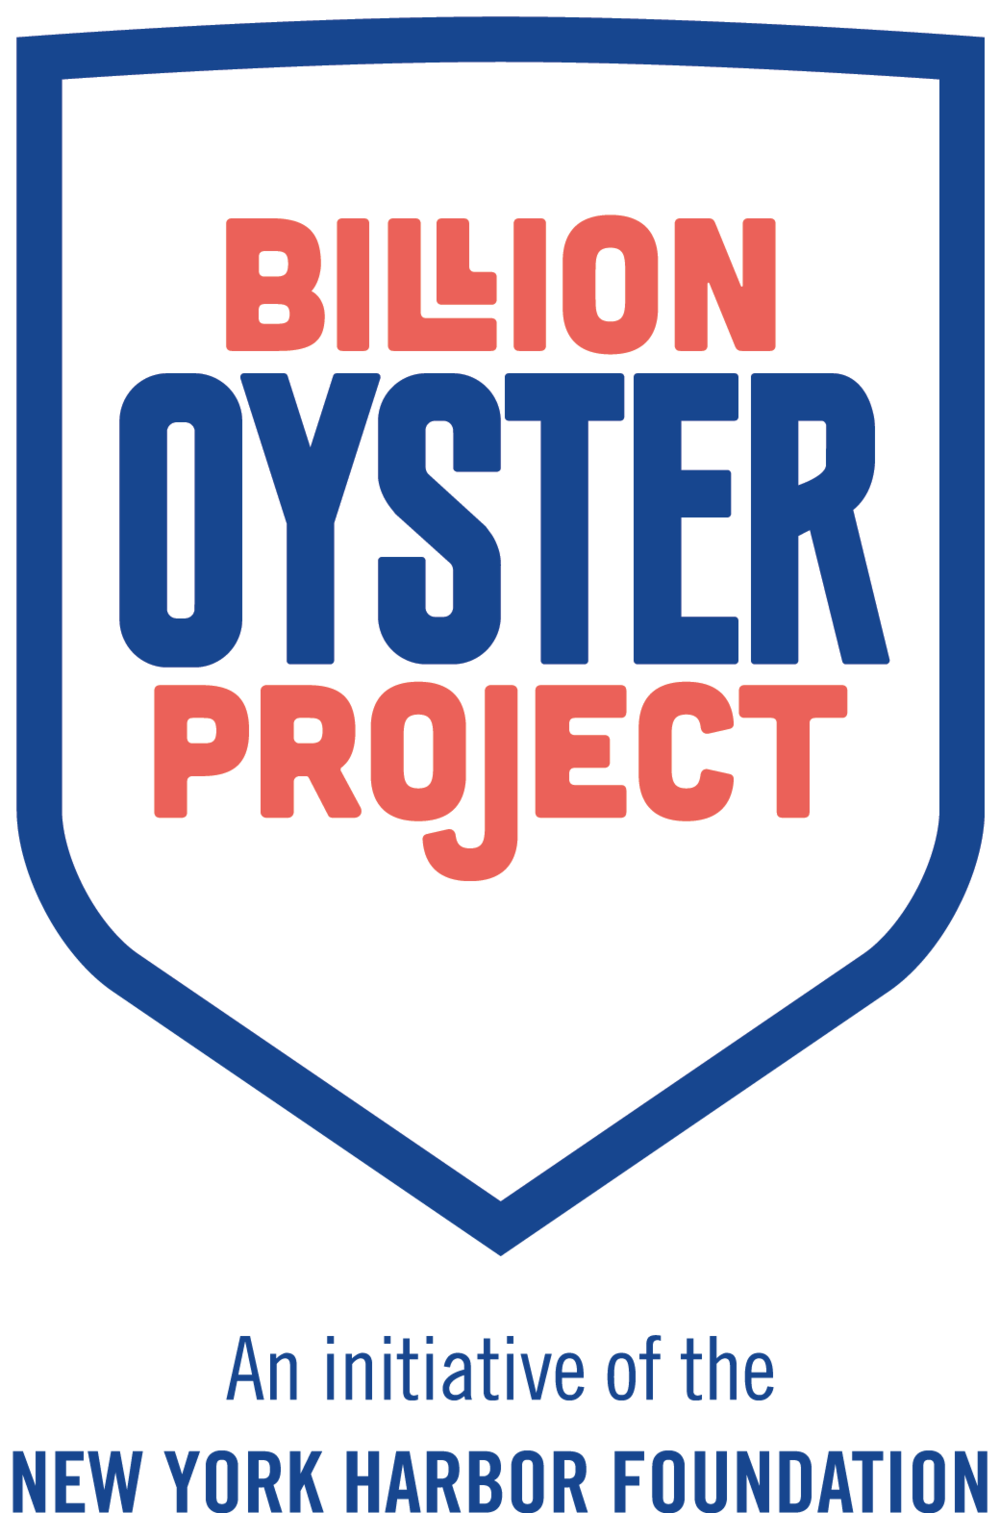 http://billionoysterproject.org/